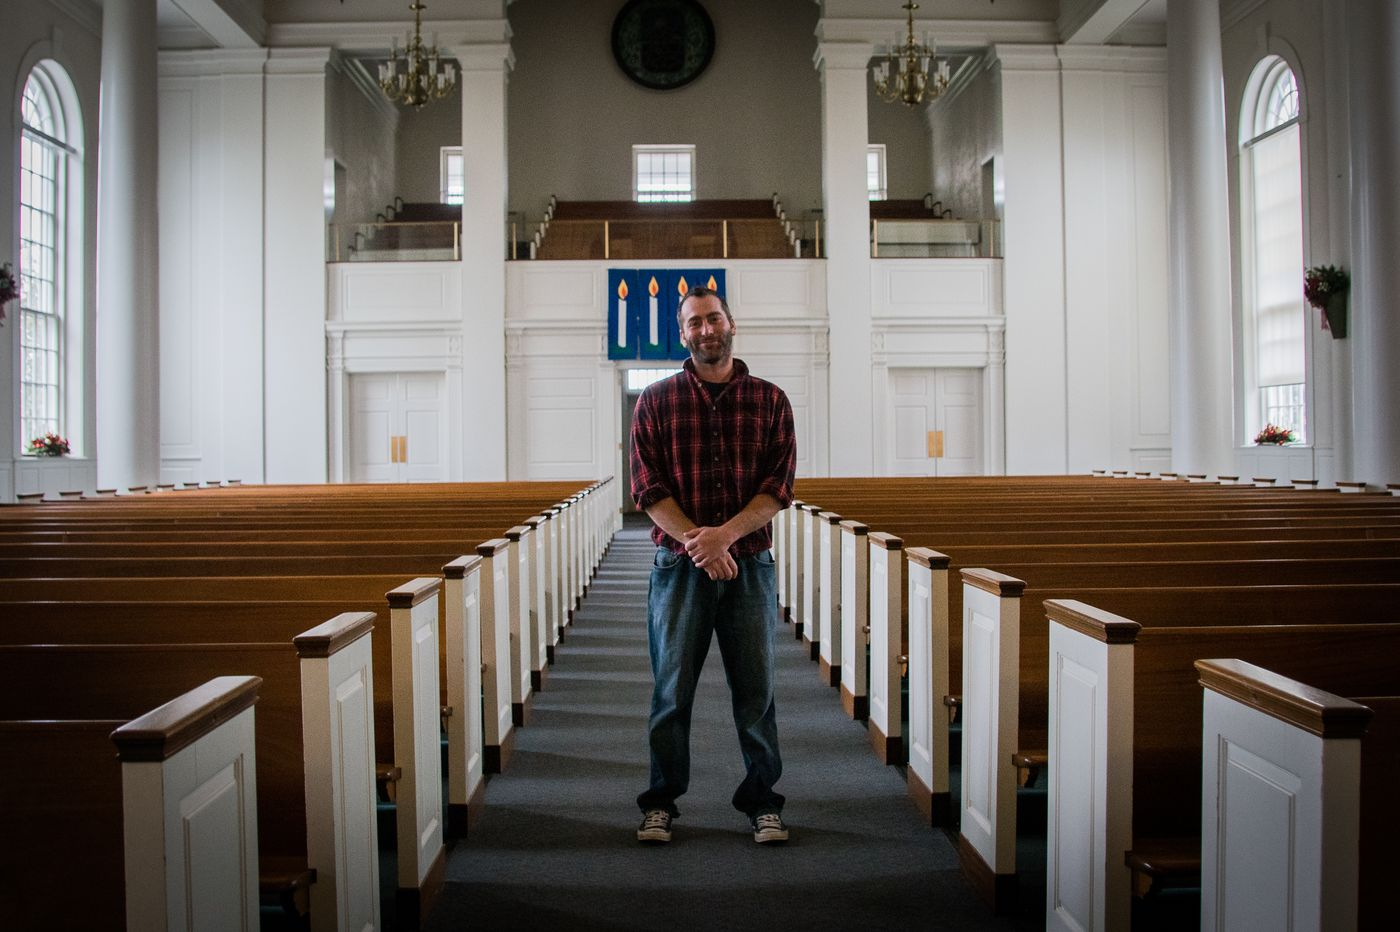 Christmas redemption: How a Lansdale congregation forgave the man who vandalized their church